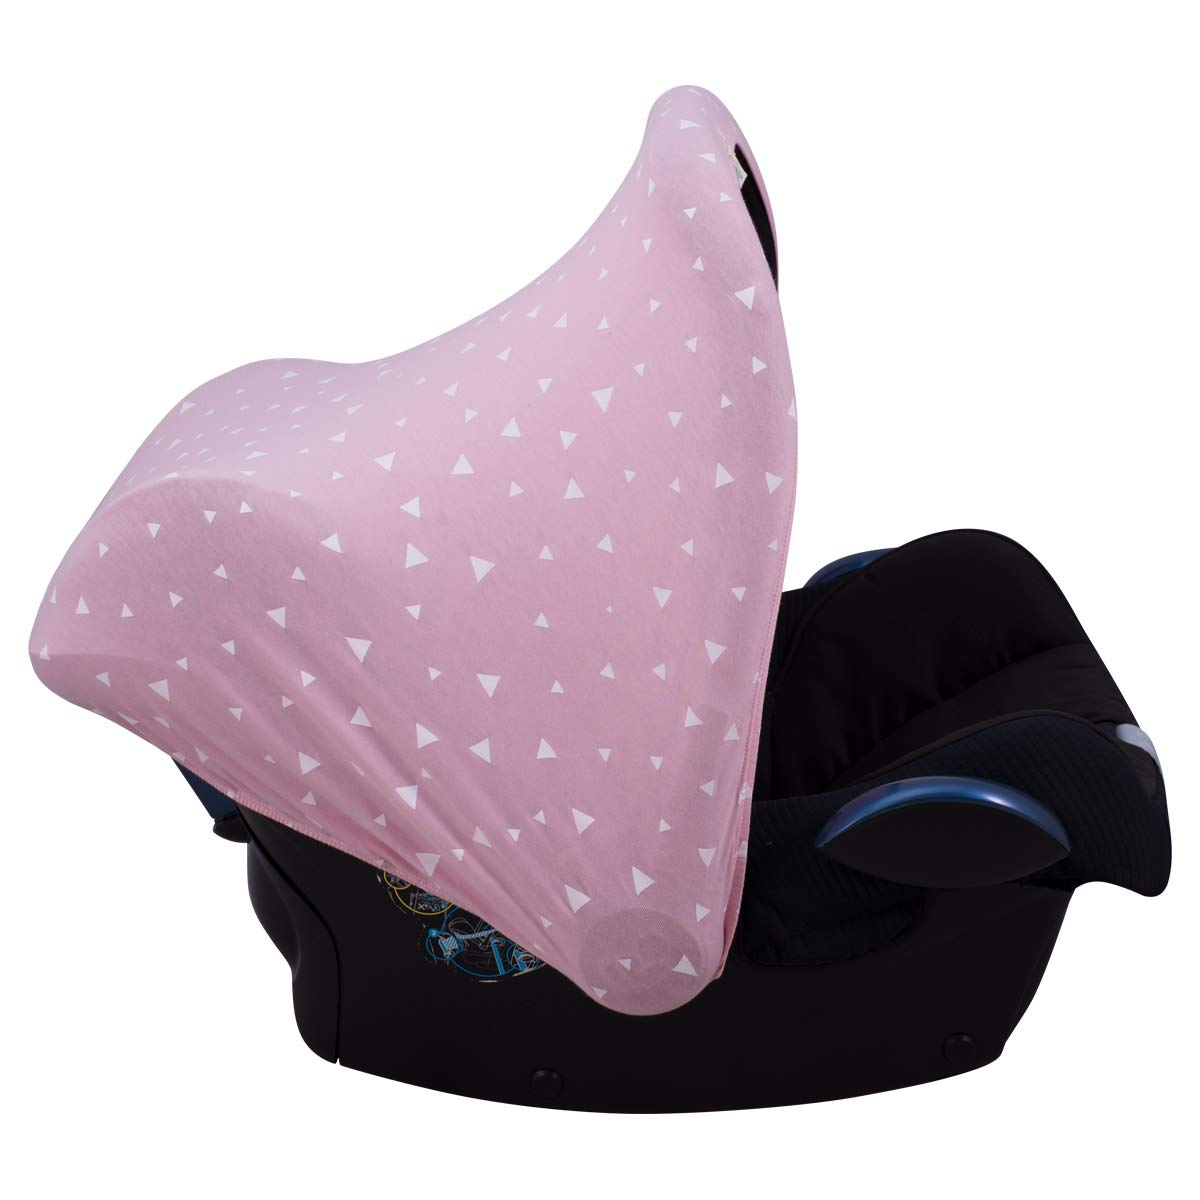 JANABEBÉ Universal Hood Canopy for Baby Carriers and Group 0 Chairs (Pink Sparkles)